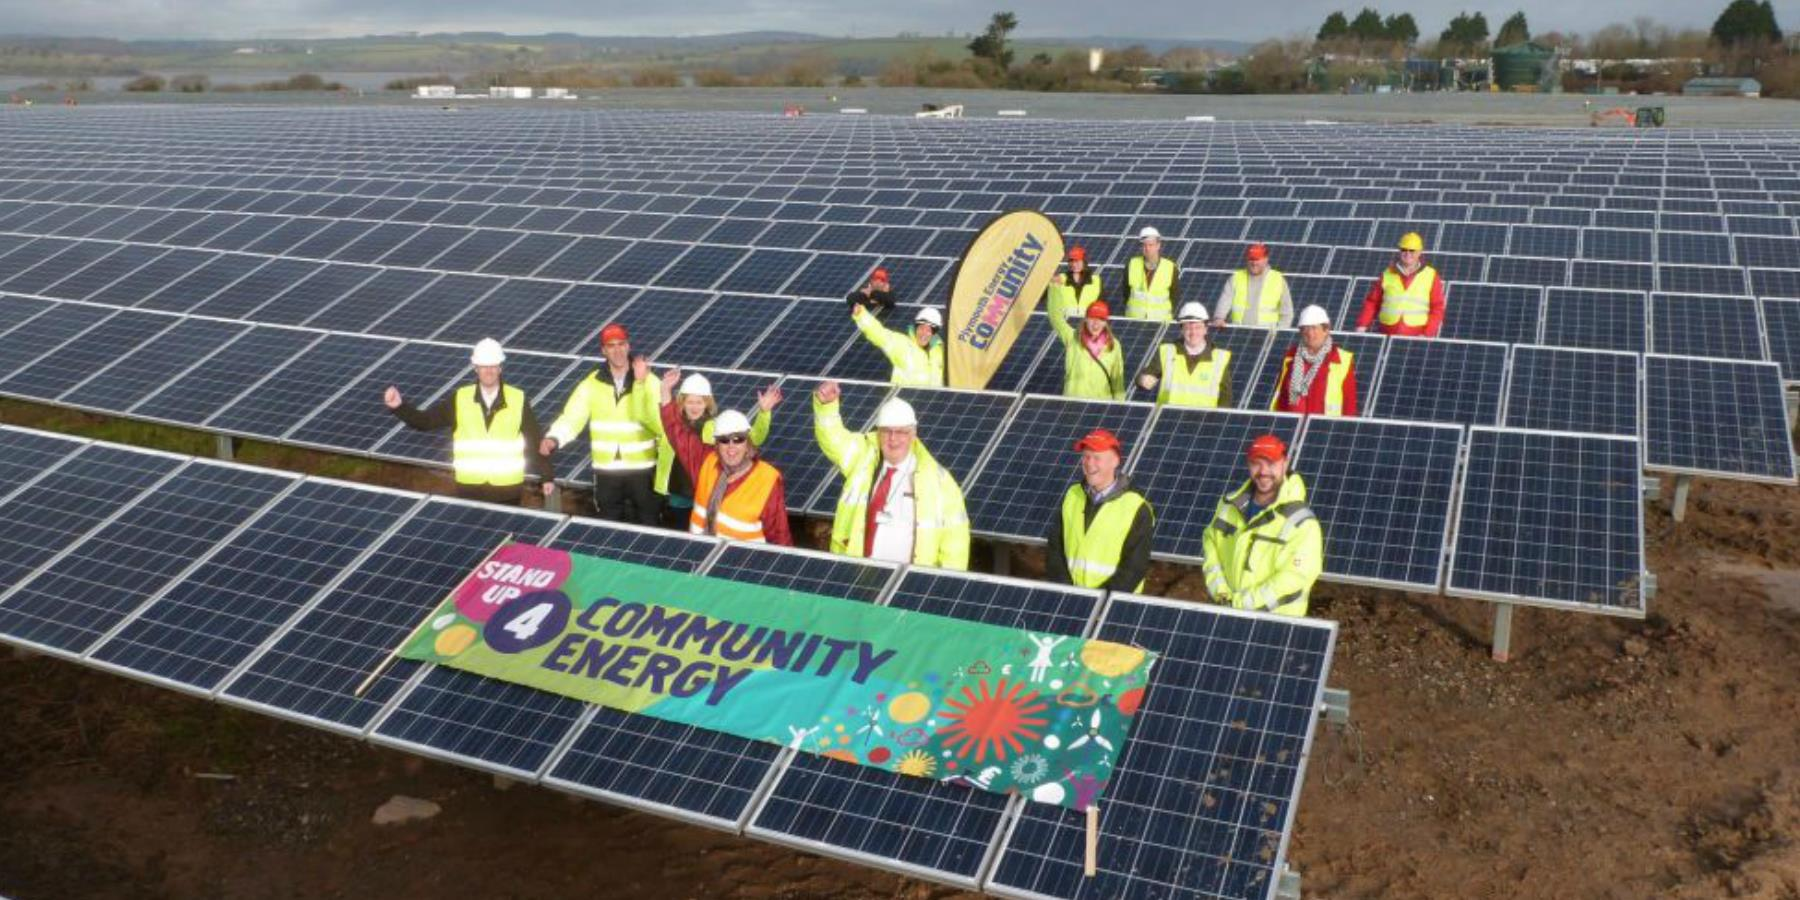 Community Energy: Putting people at the heart of the energy transition